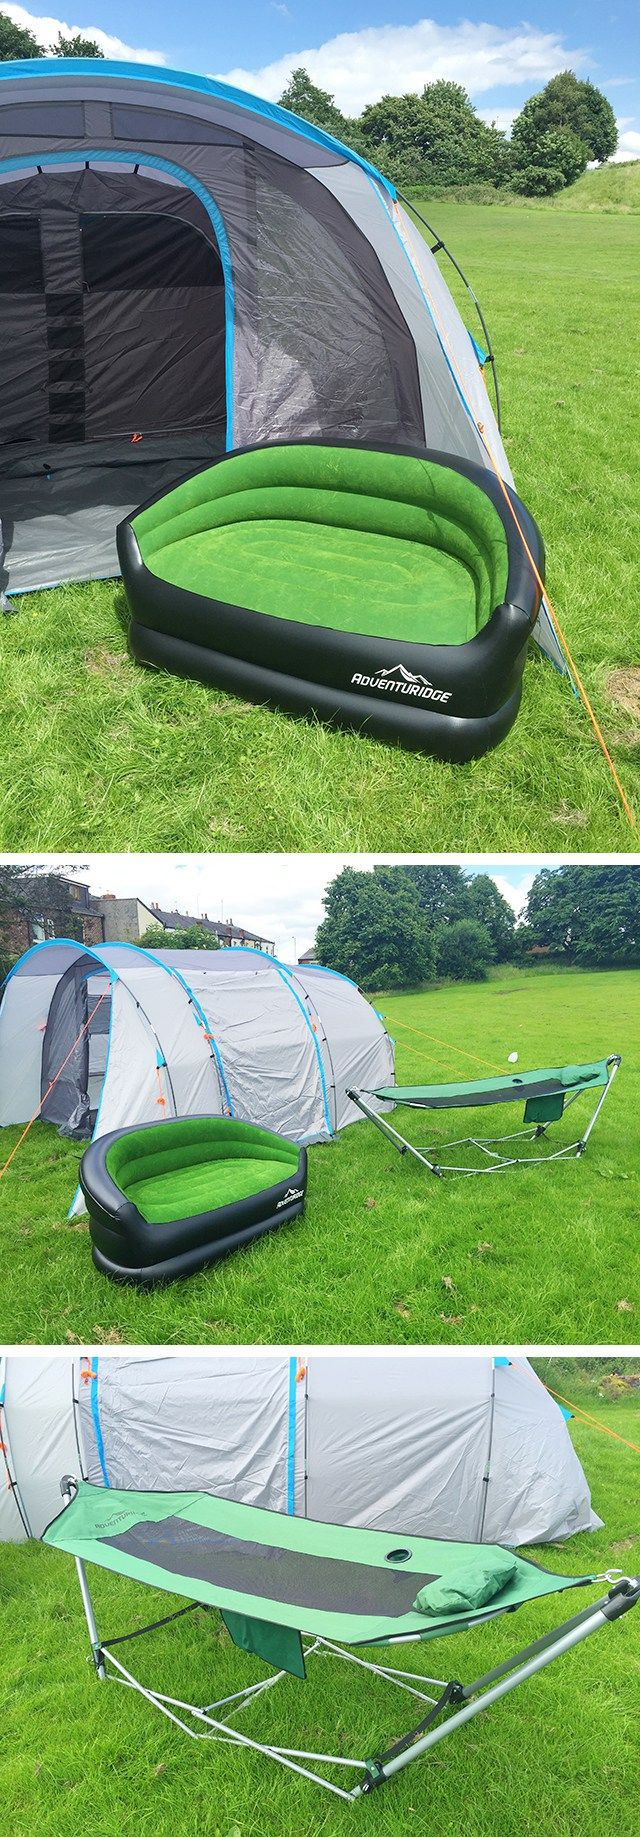 ALDI 5 man tent review plus the inflatable sofa & hammock from the fab new camping range from the ALDI Special Buys